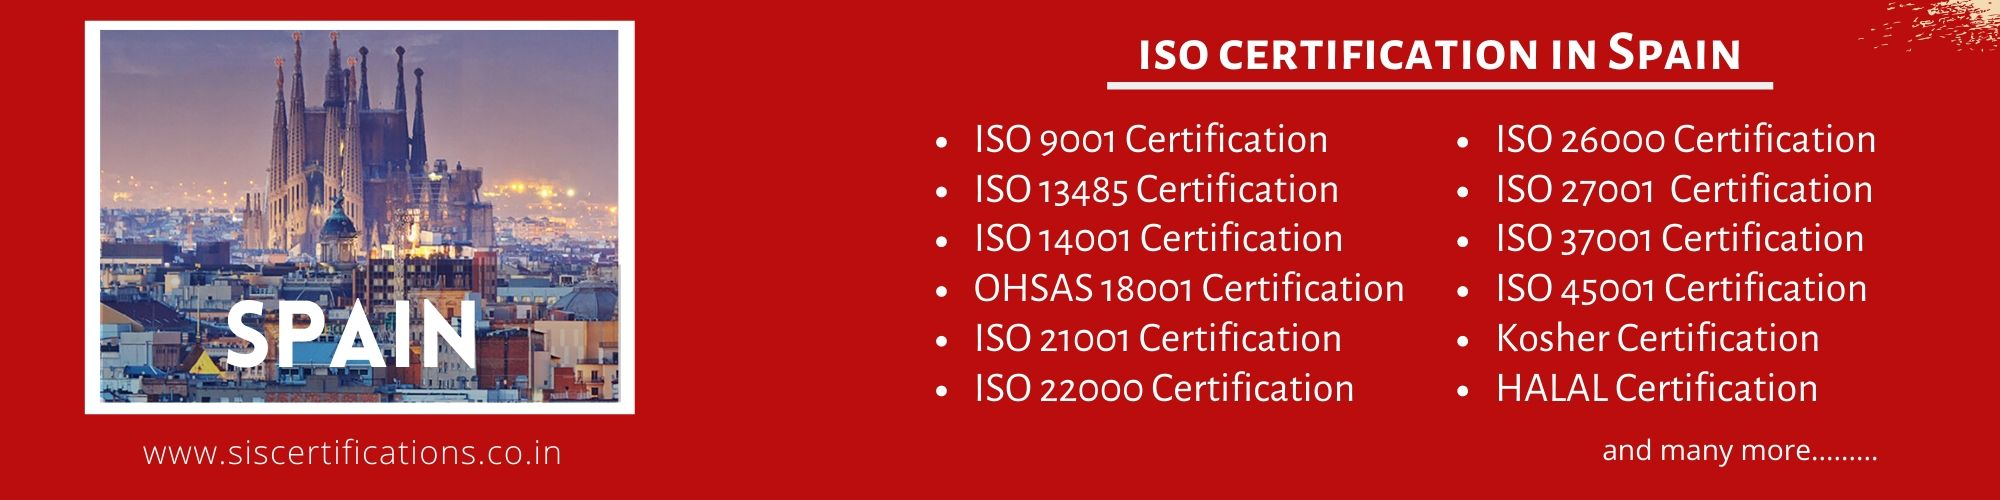 iso certification in Croatia;